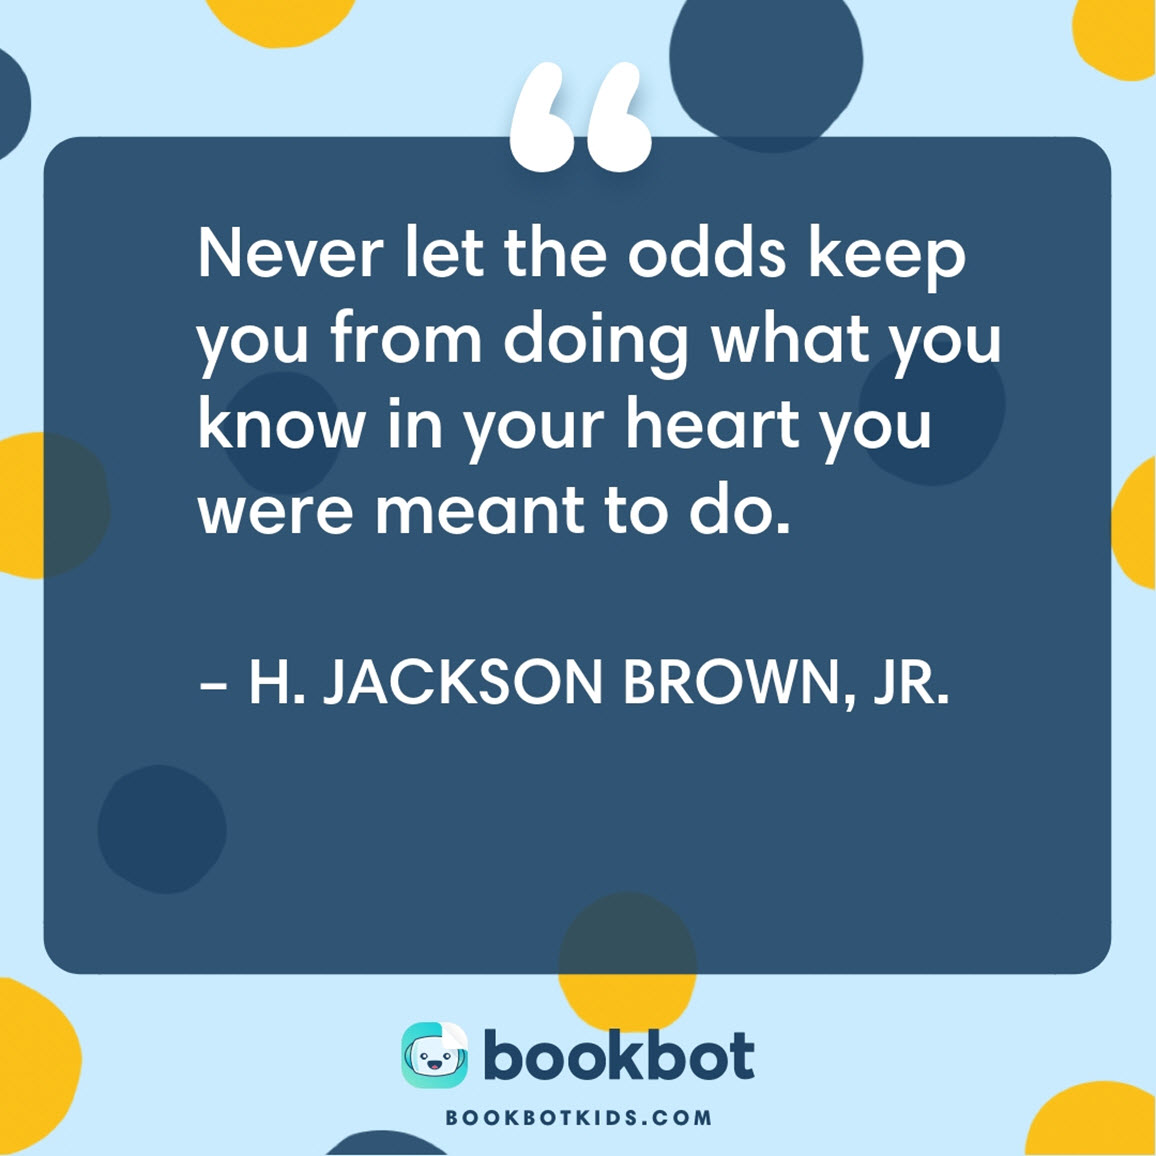 Never let the odds keep you from doing what you know in your heart you were meant to do. – H. Jackson Brown, Jr.